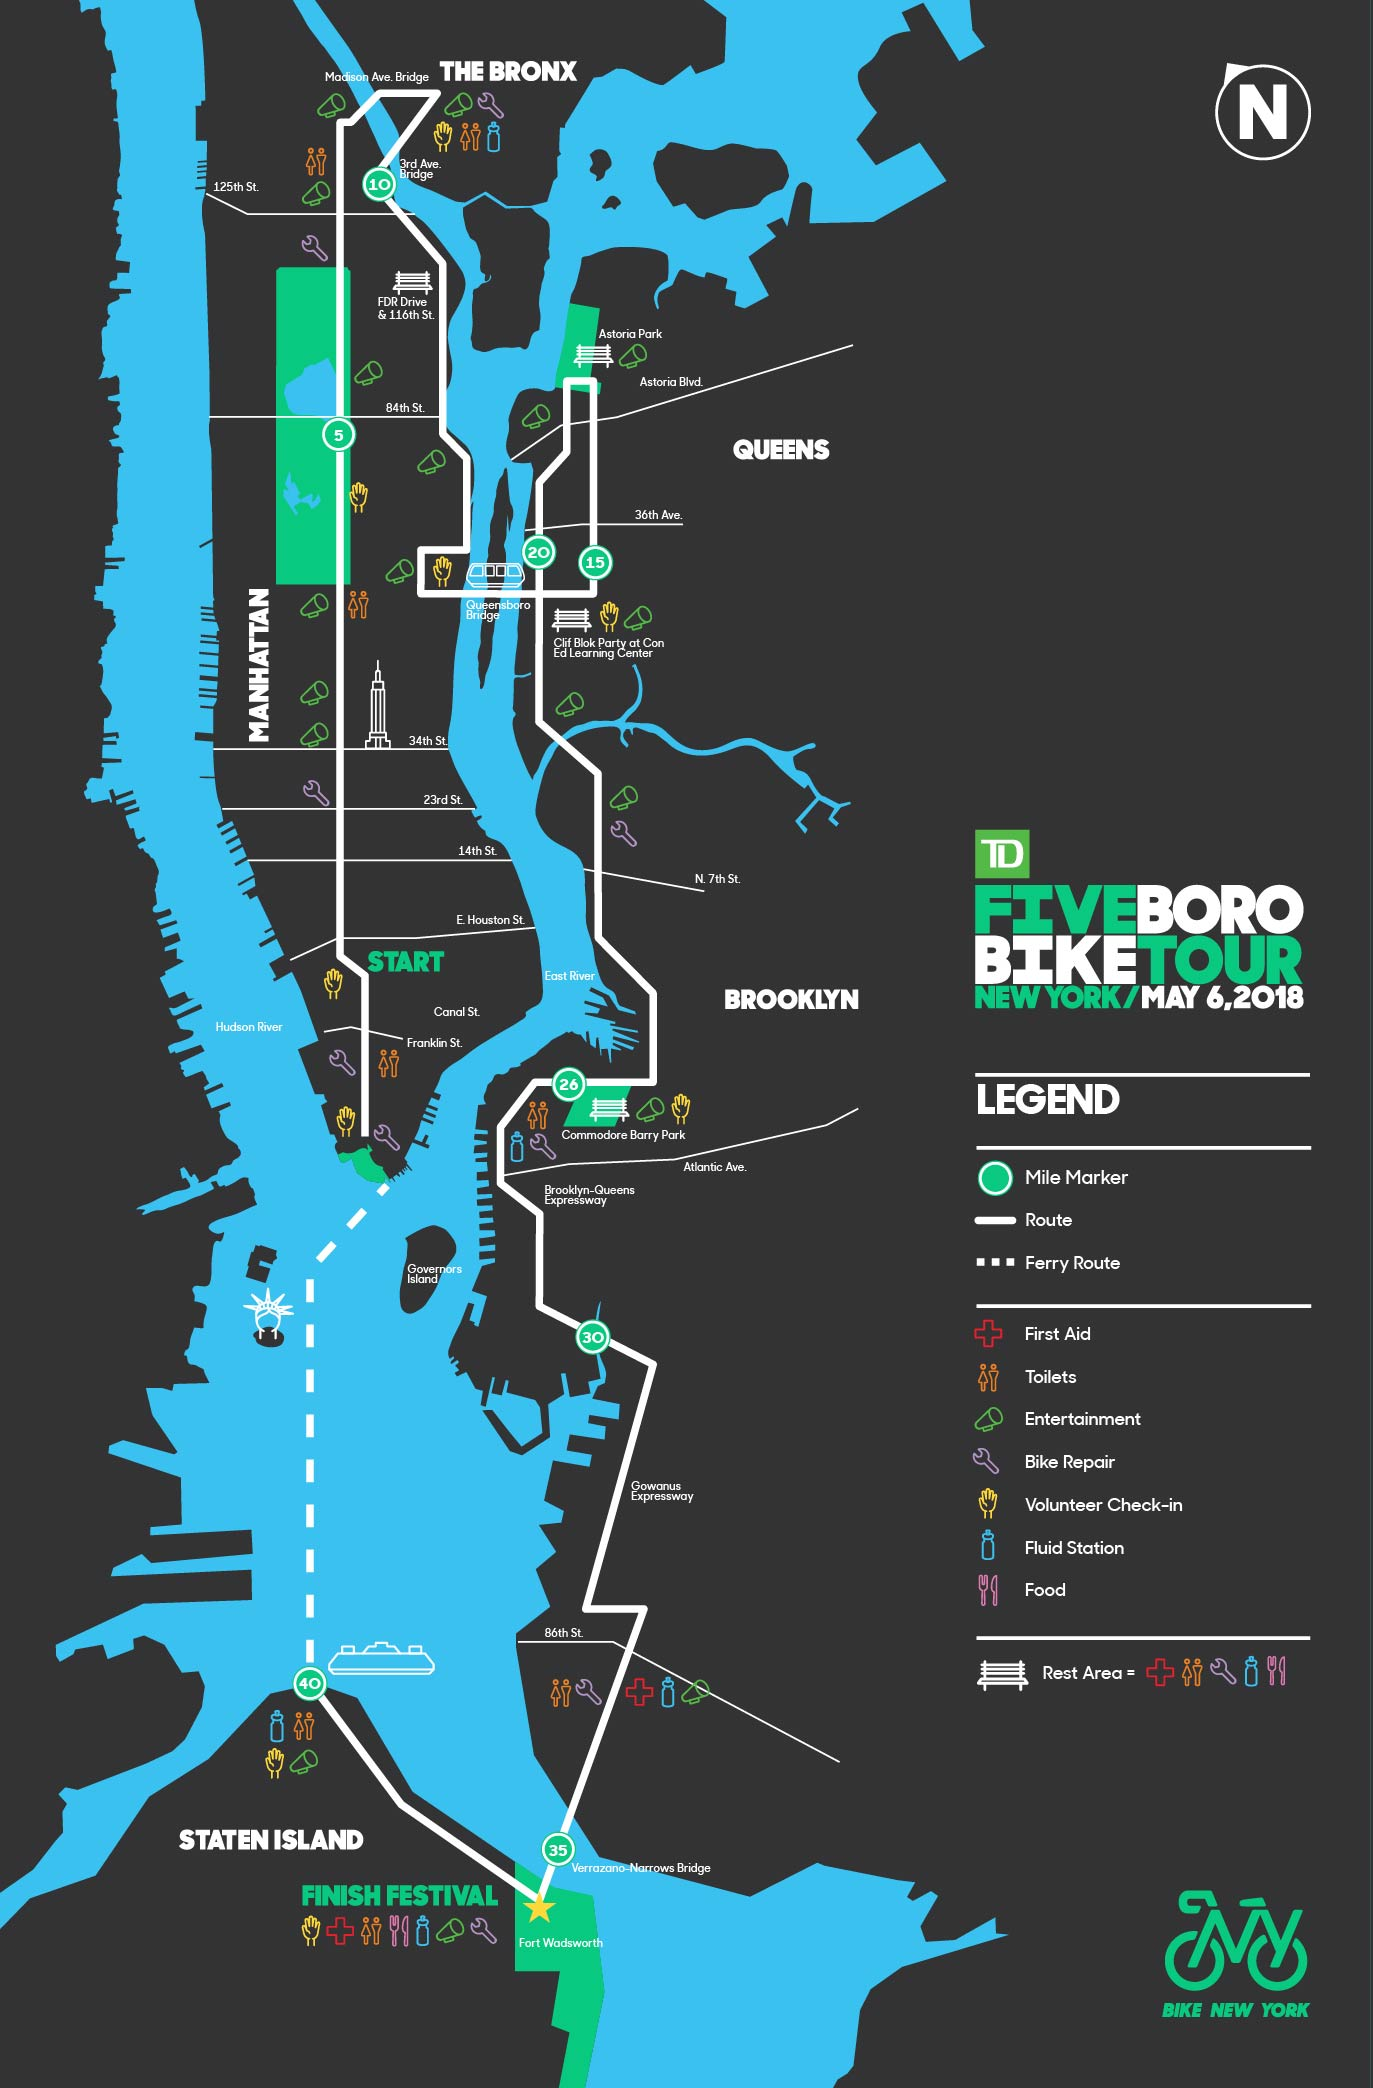 Five Boro Bike Tour 2018 Sunday May 6th Nyc Bike Maps